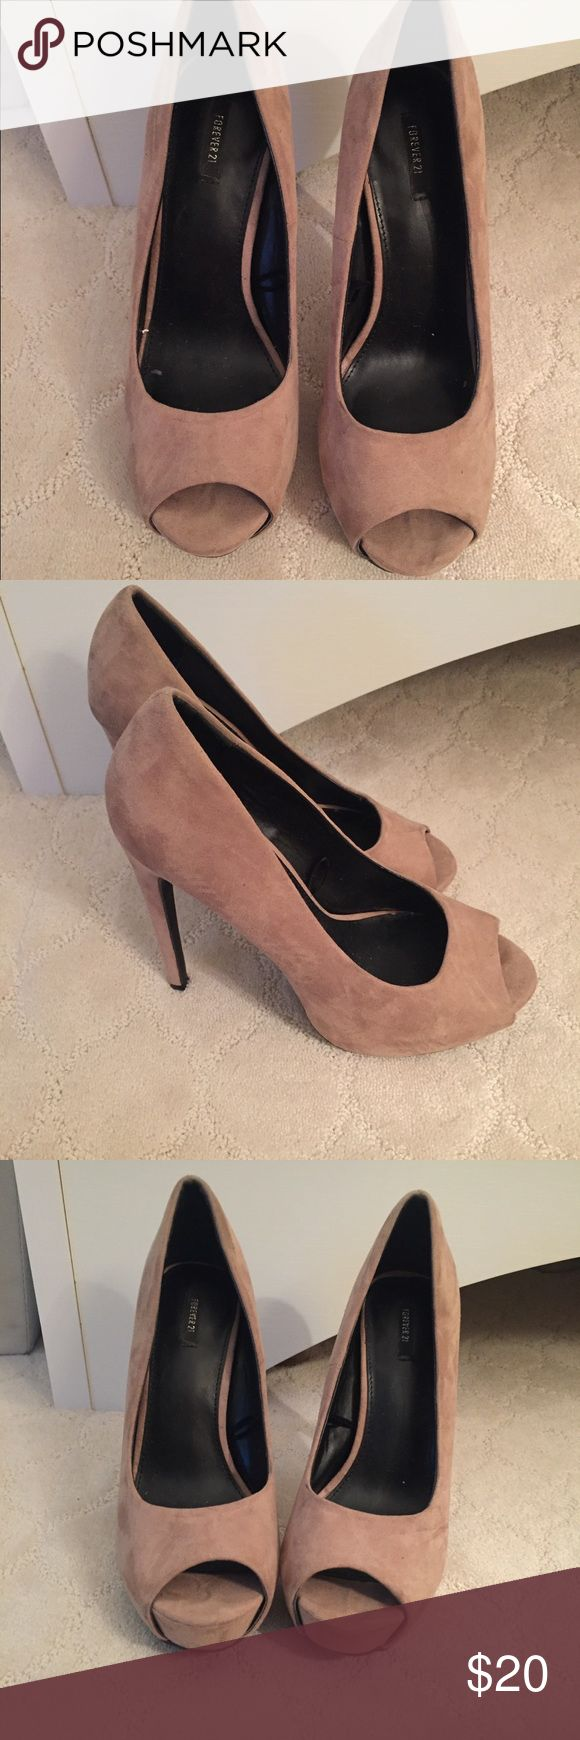 Forever 21 peep toe heels, size 9 Peep toe heels. Tan suede. Very neutral and season less style. Worn once. Excellent condition! Forever 21 Shoes Heels